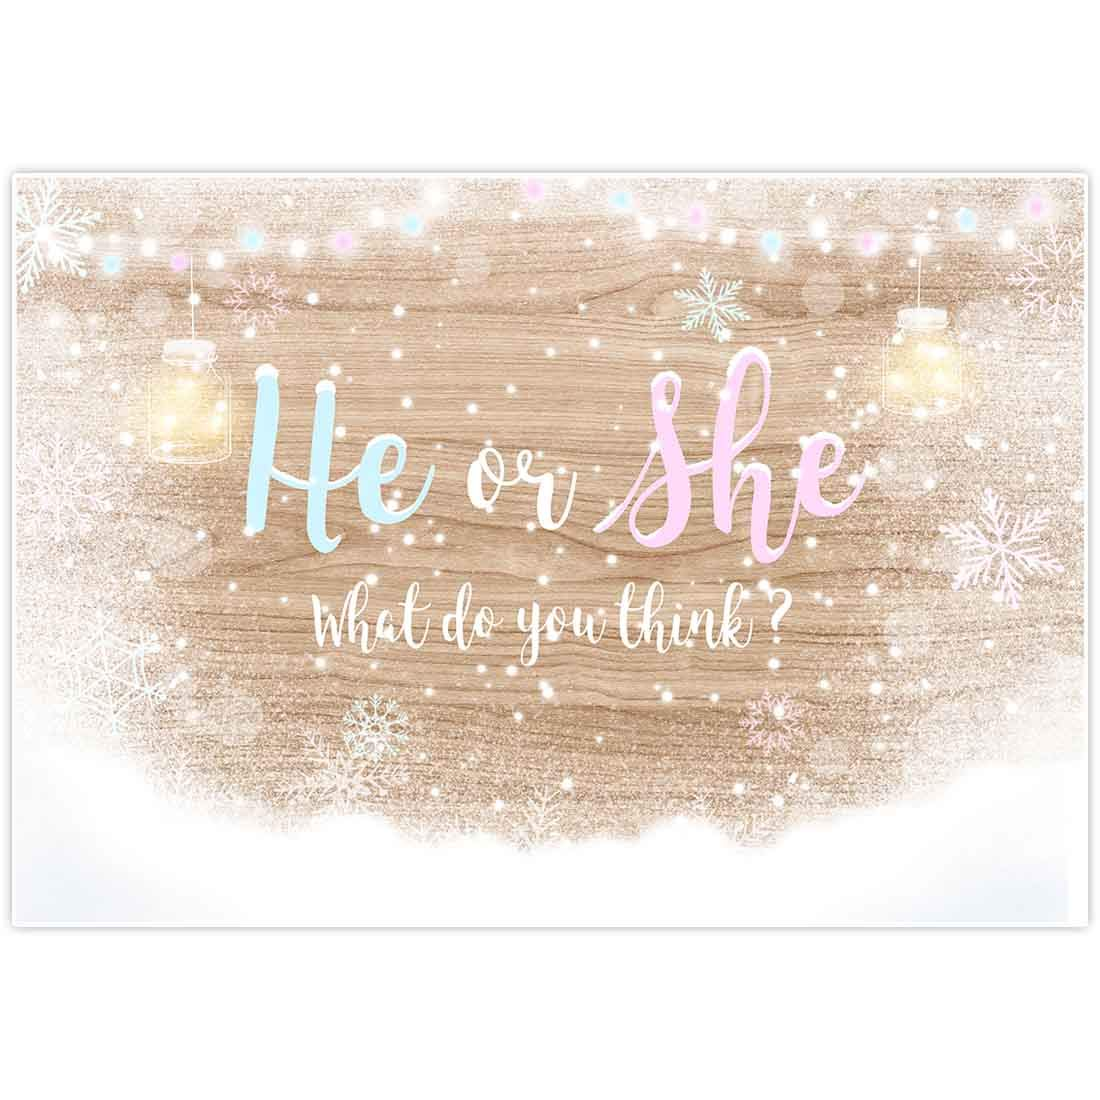 Allenjoy 8x6ft Winter Gender Reveal Backdrop Girl or Boy Supplies Newborn Pregnancy Announcement Surprise Party Baby Shower Baptism Mason Jars Rustic Wood Background Candy Table Decorations Props